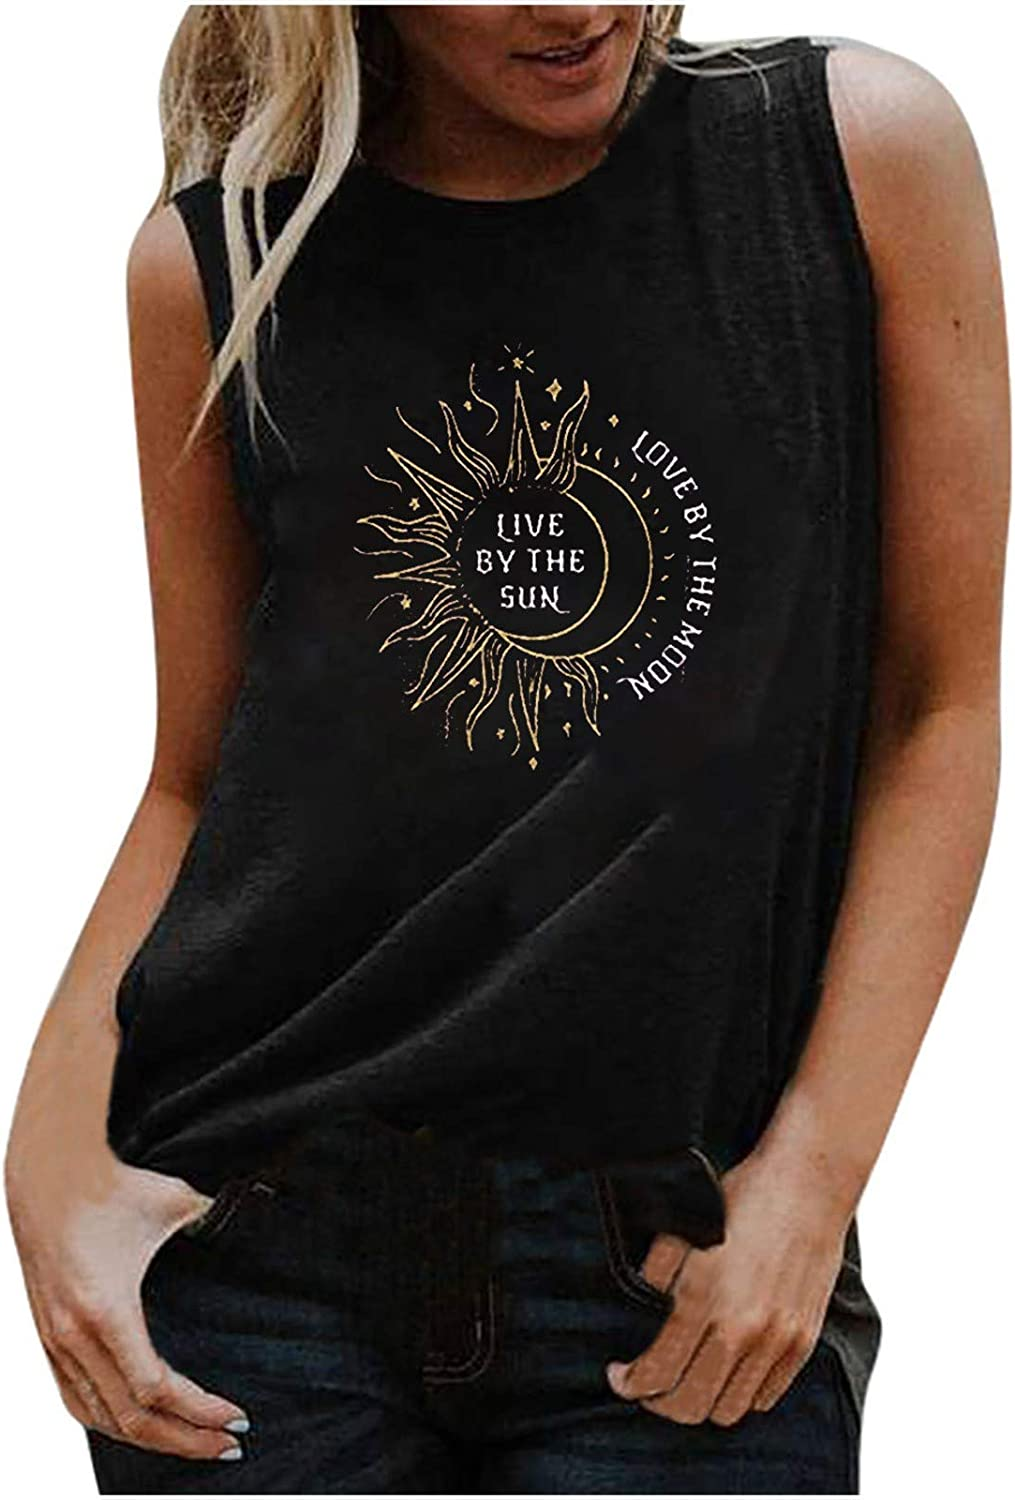 977 Women Tank Tops Round Neck Summer Sleeveless T-Shirts Loose Breathable Basic Vest Comfy Workout Tunic Tee